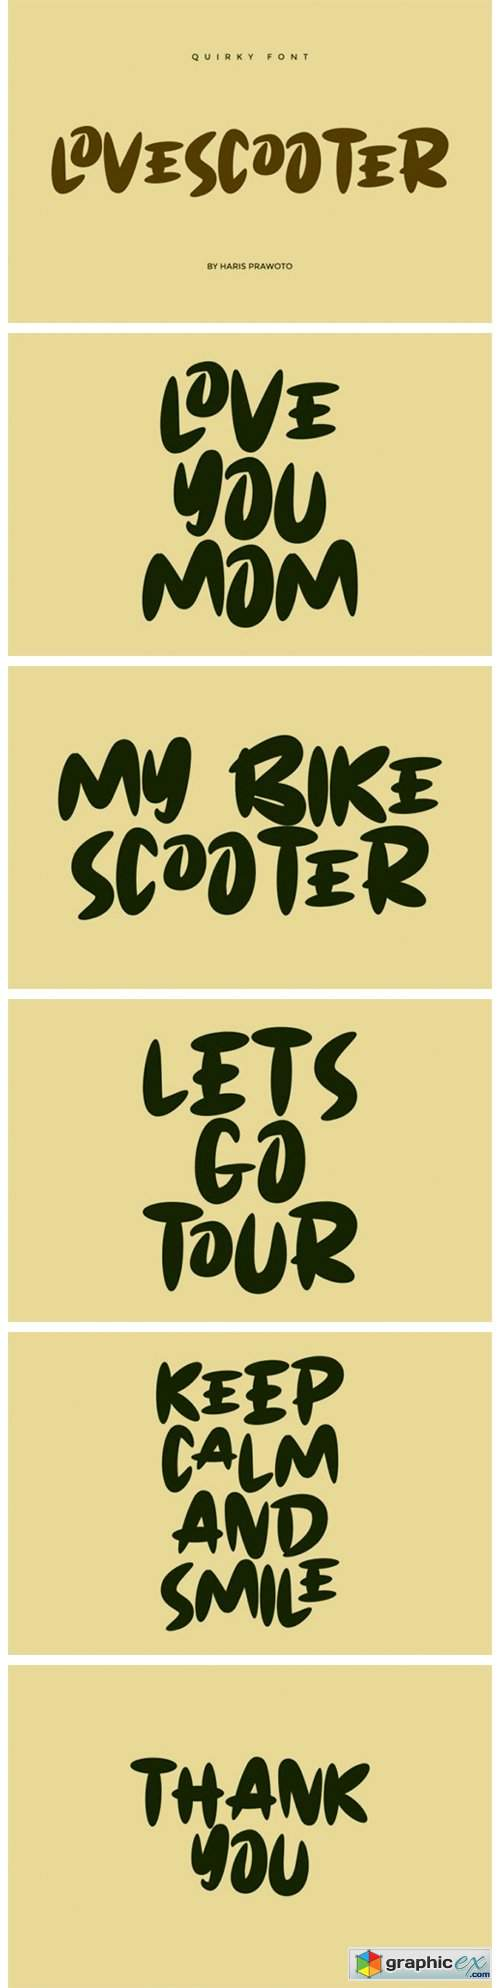 Lovescooter Font